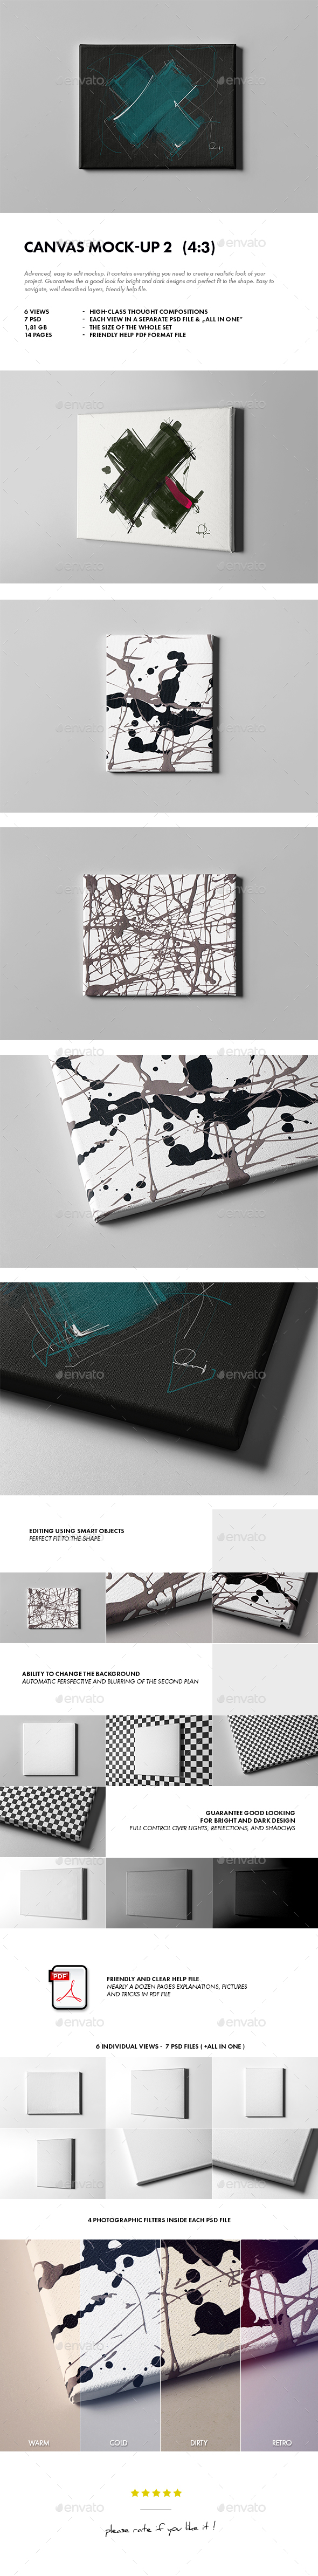 Canvas Mock-up 2 - Miscellaneous Product Mock-Ups